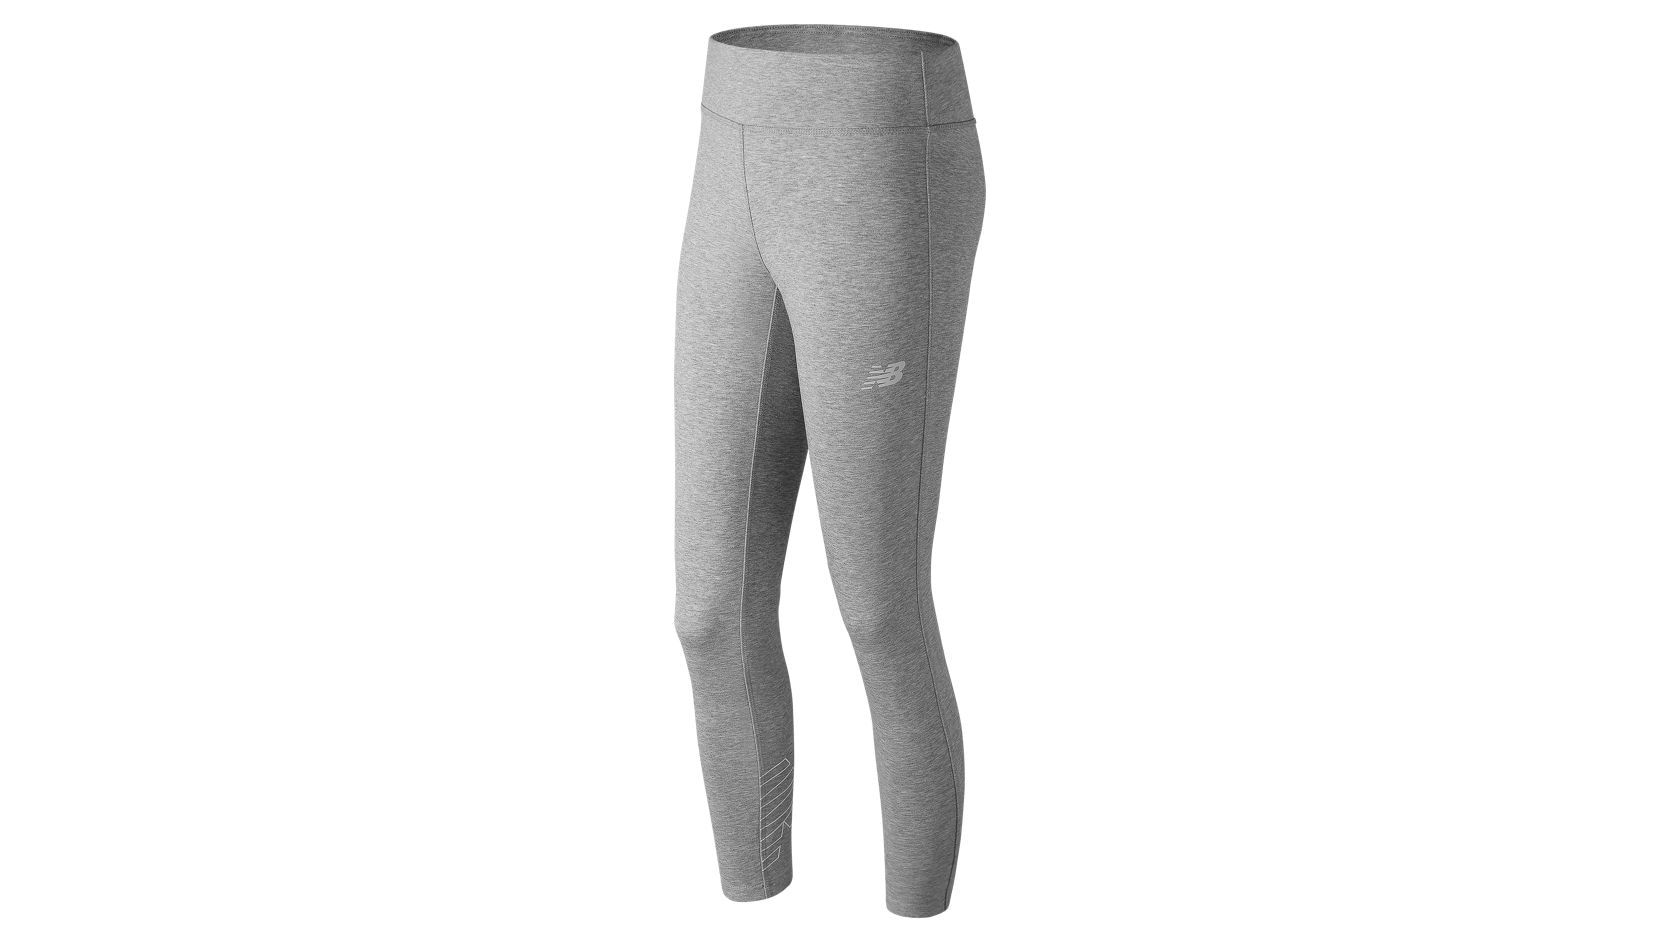 NB ATHLETICS LEGGING continental часы continental 12206 ld354130 коллекция sapphire splendour